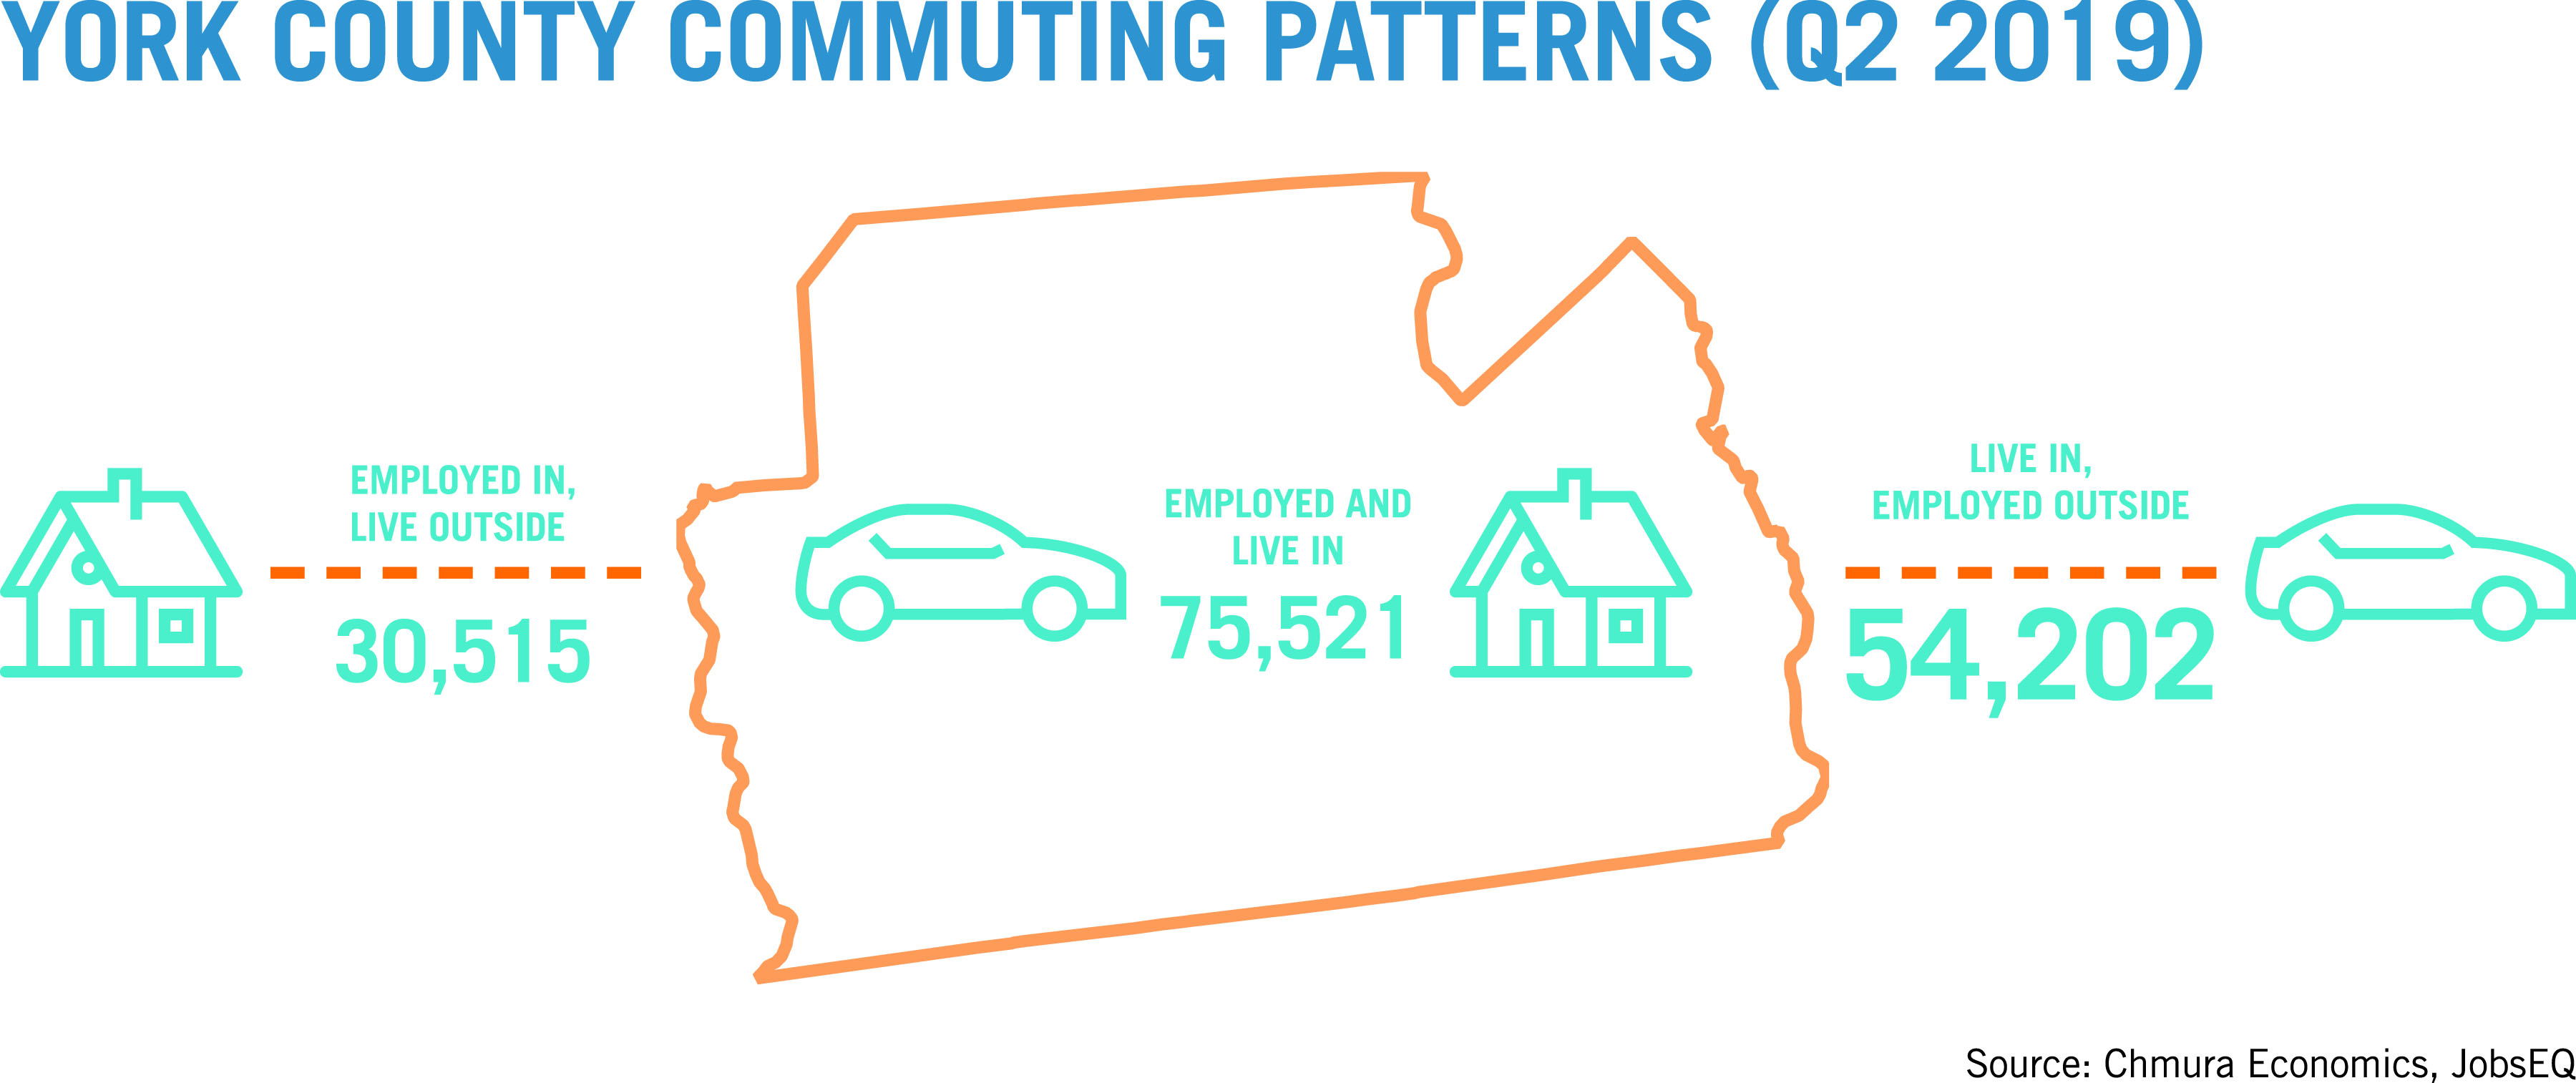 York County Commuting Patterns